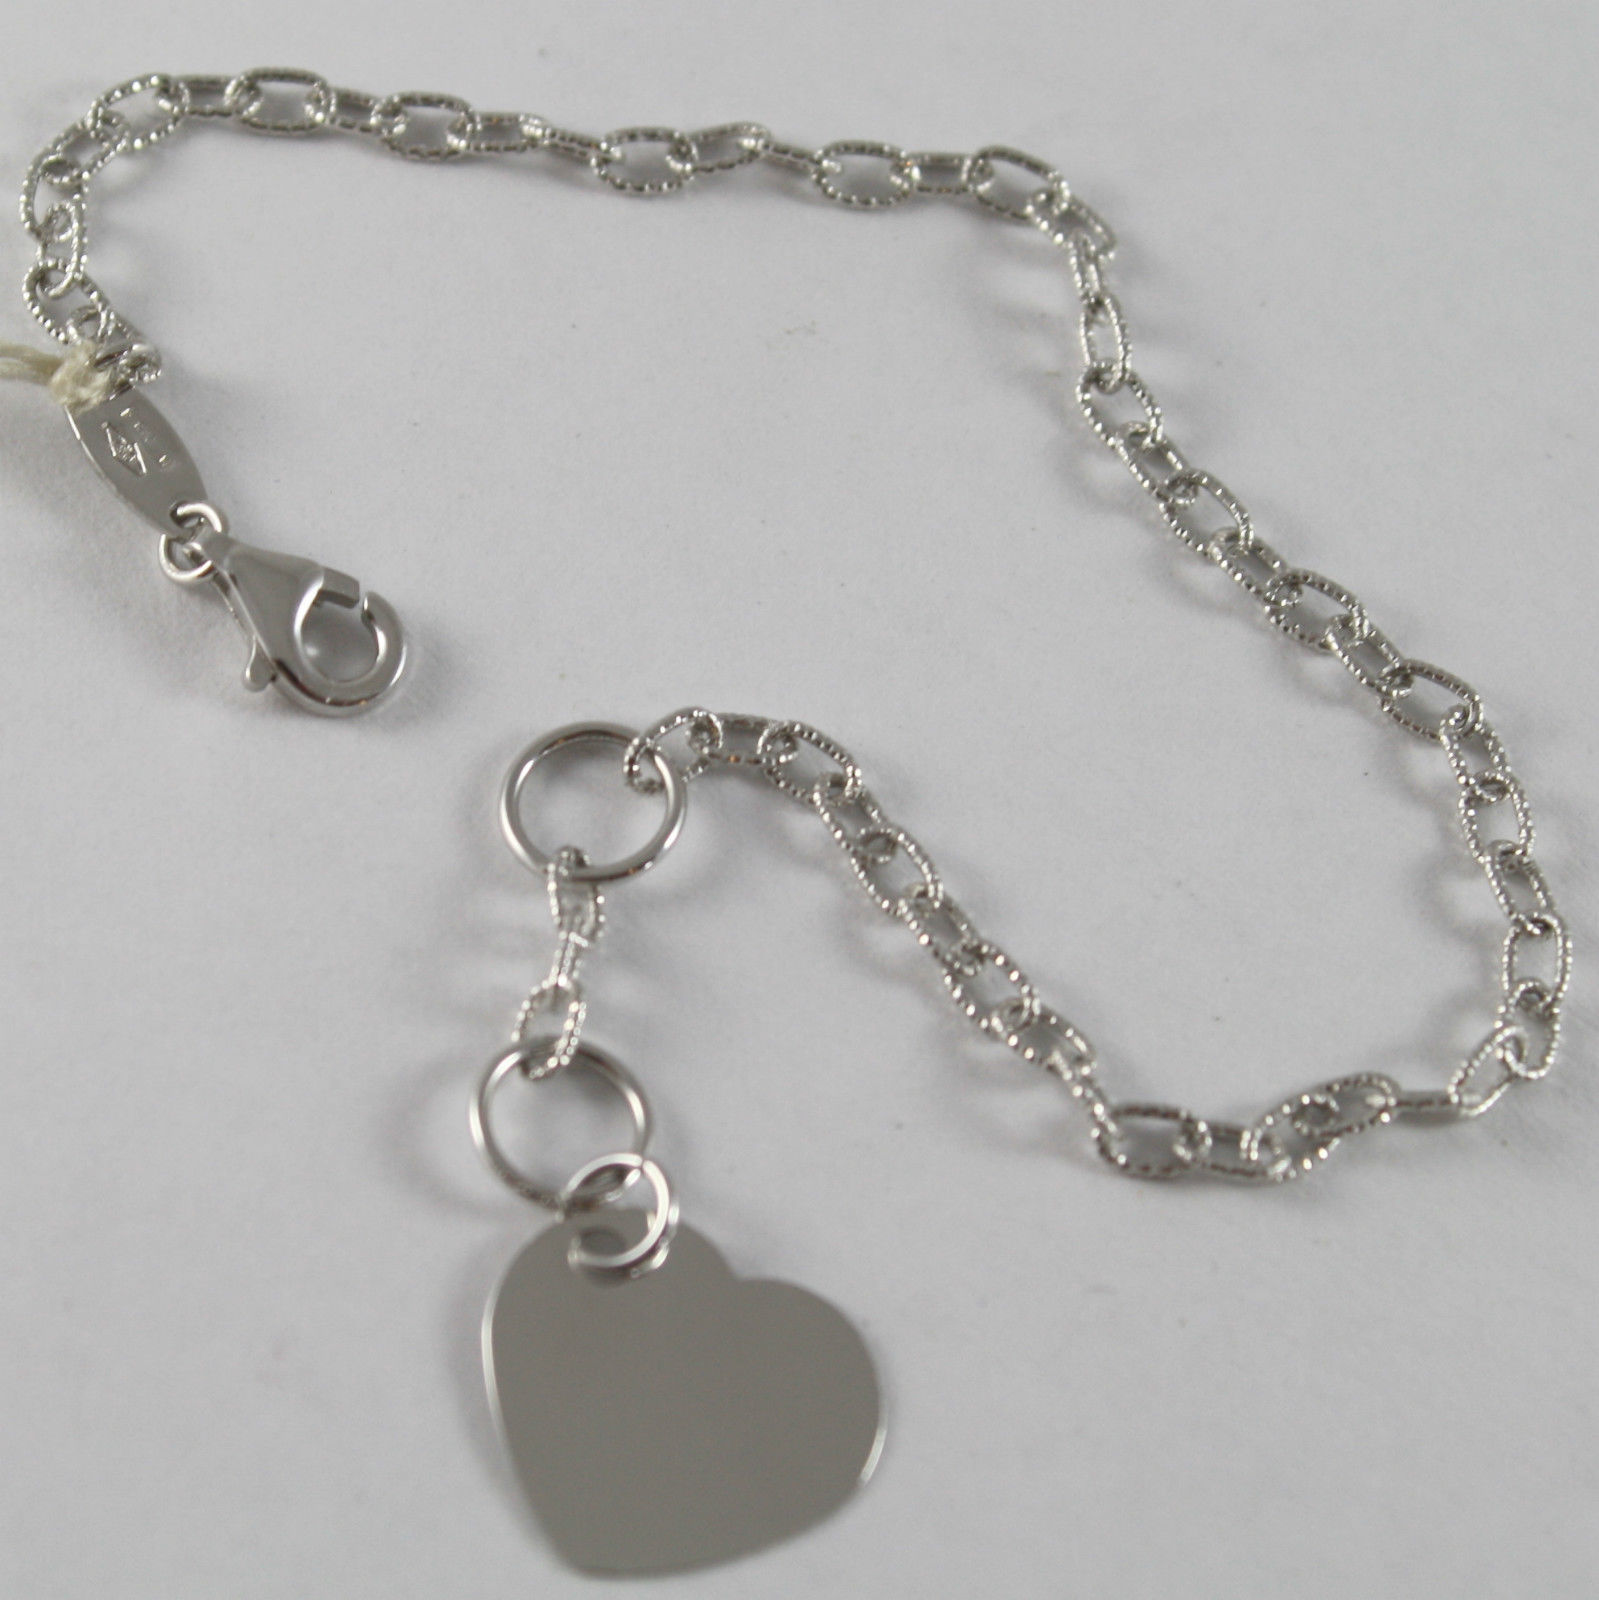 SOLID 18K WHITE GOLD BRACELET WITH ENGRAVING PENDANT HEART, MADE IN ITALY